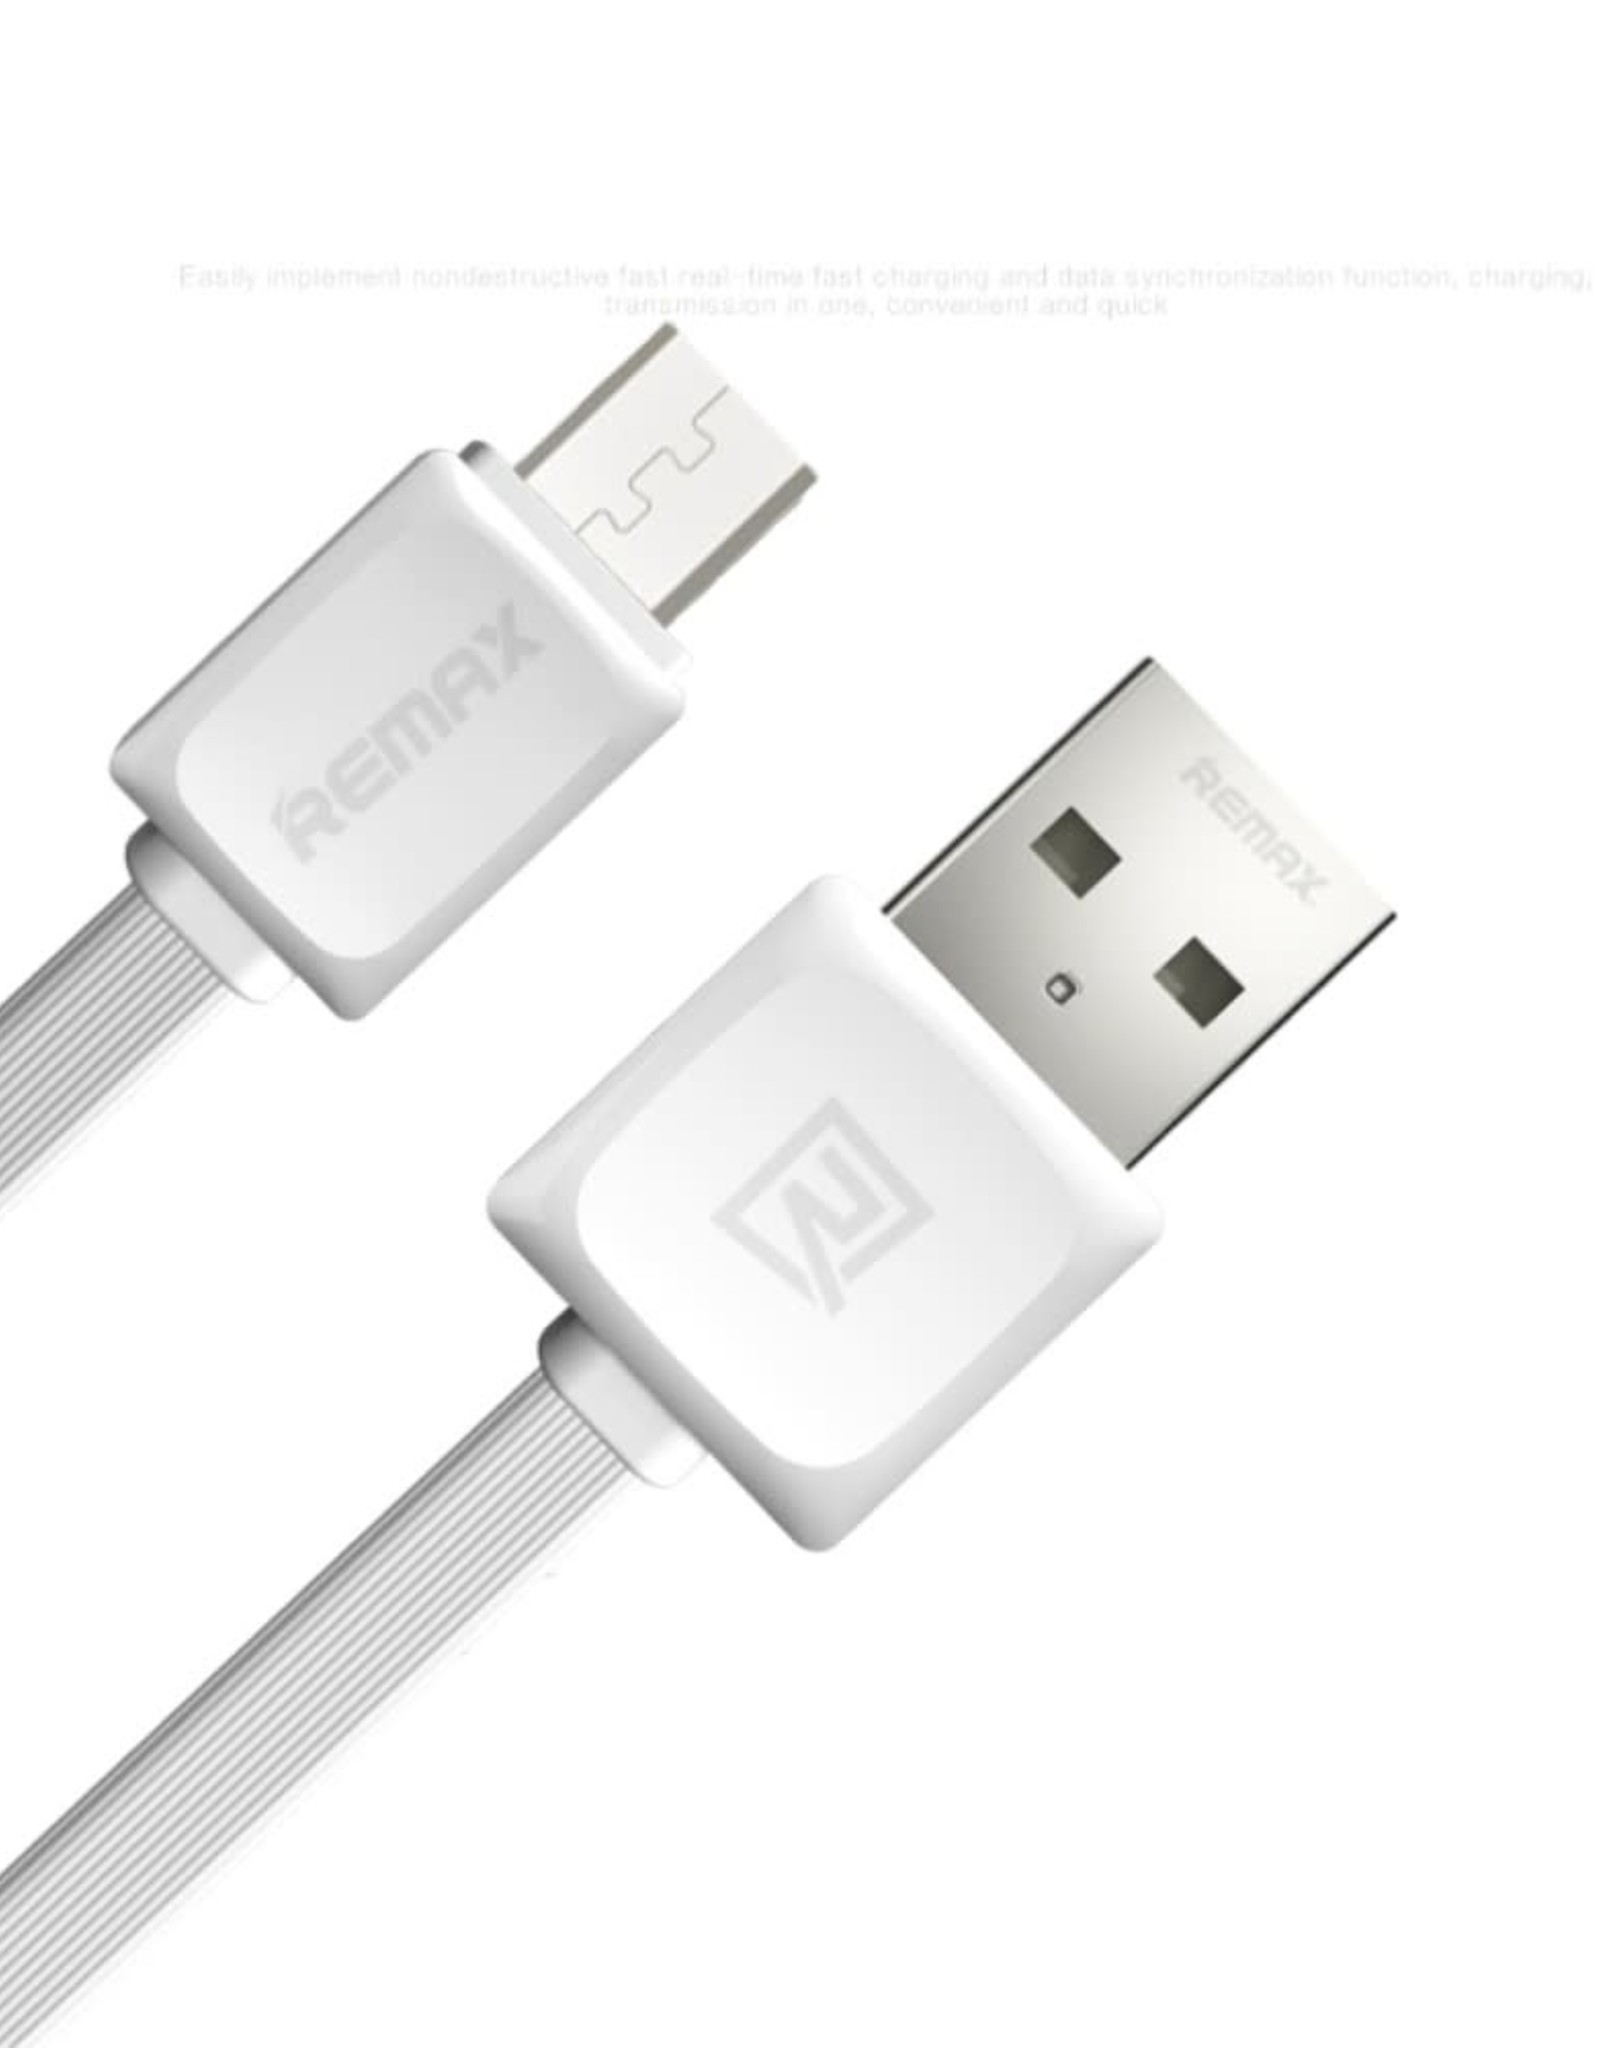 REMAX Fast Data Charging Cable Micro USB Cord - White